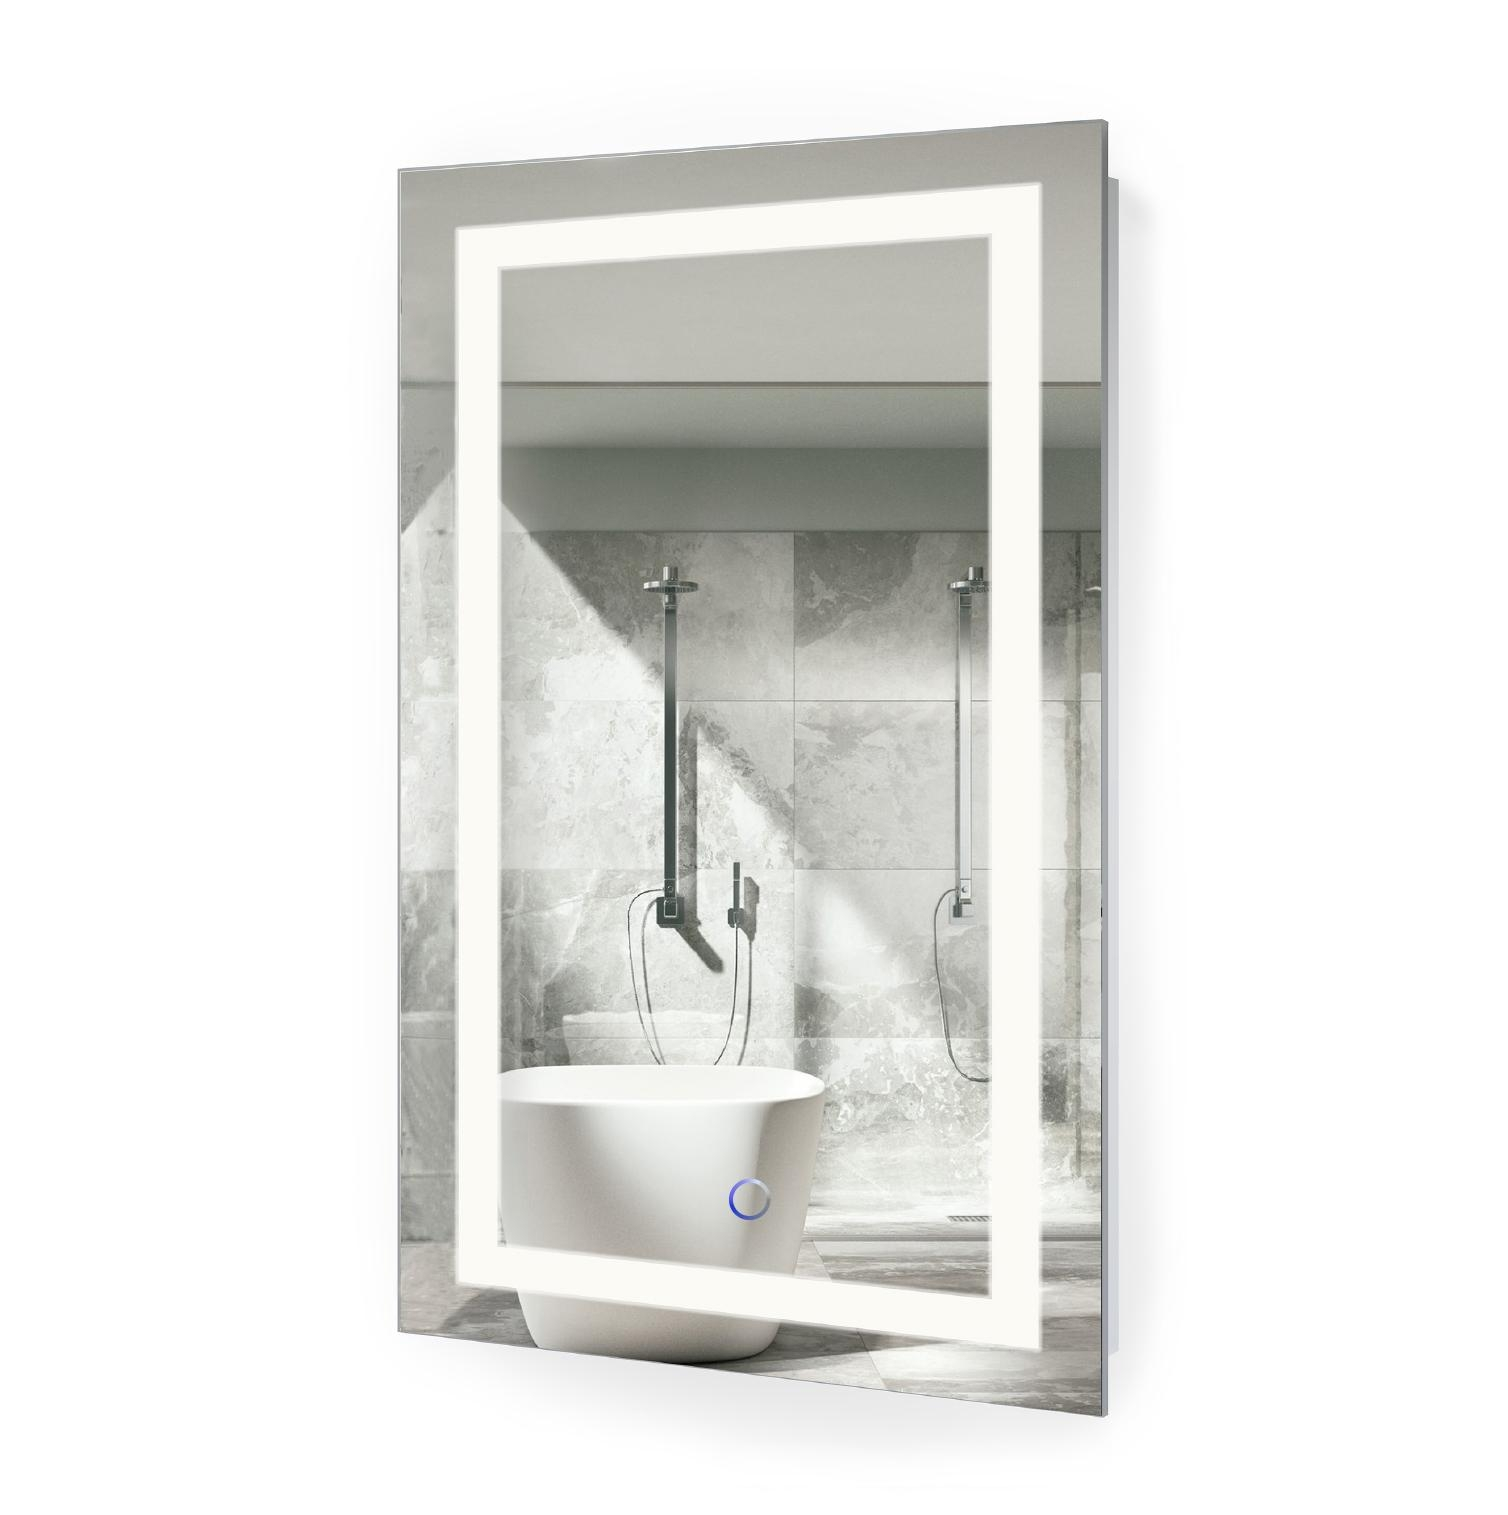 "Led Vanity Mirror 18""x30"" Bathroom Lighted Mirror With Dimmer Throughout Bathroom Lighted Vanity Mirrors (Image 14 of 20)"